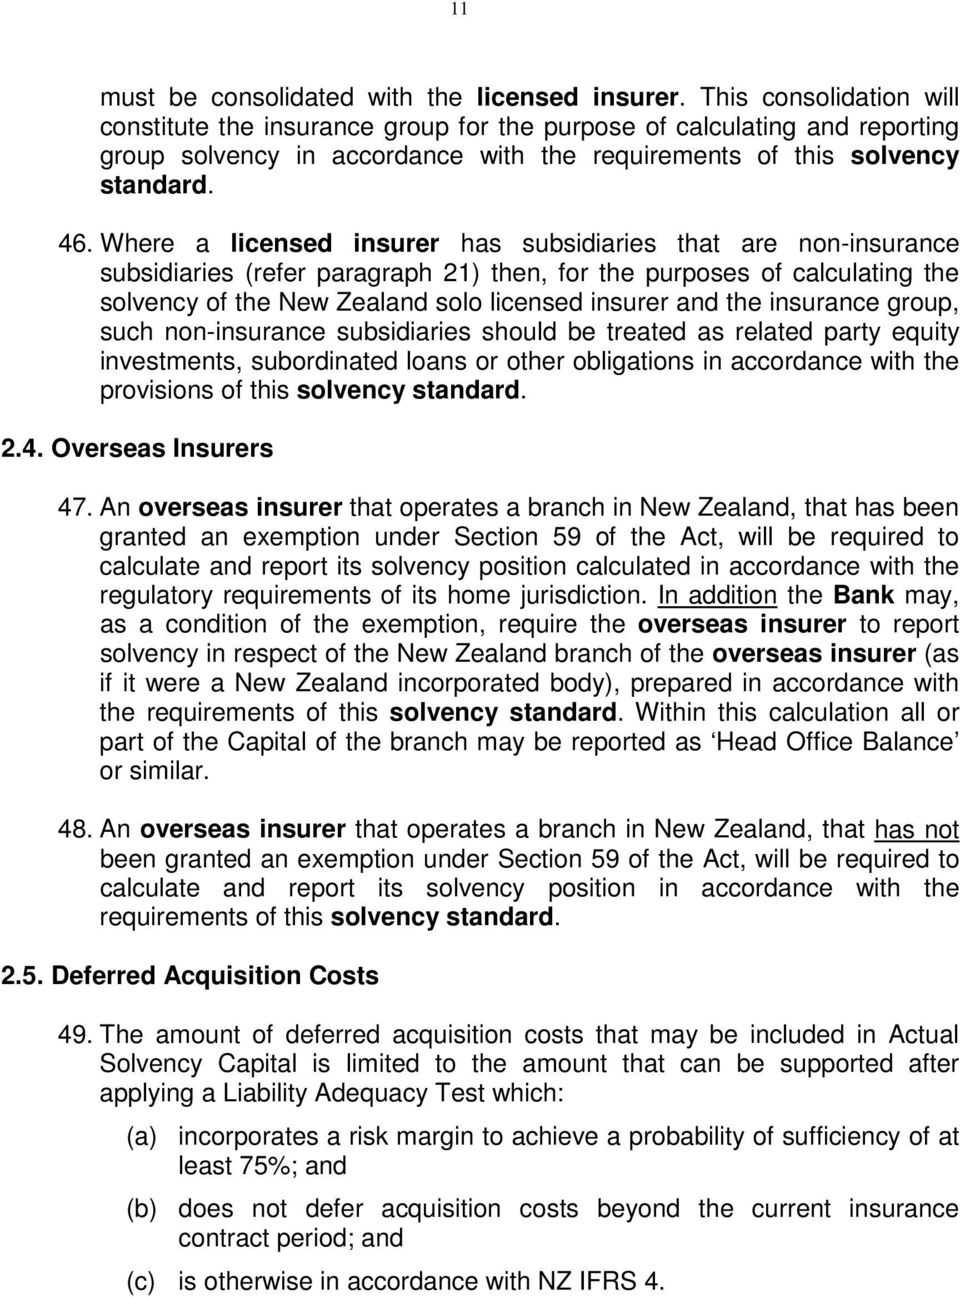 Where a licensed insurer has subsidiaries that are non-insurance subsidiaries (refer paragraph 21) then, for the purposes of calculating the solvency of the New Zealand solo licensed insurer and the